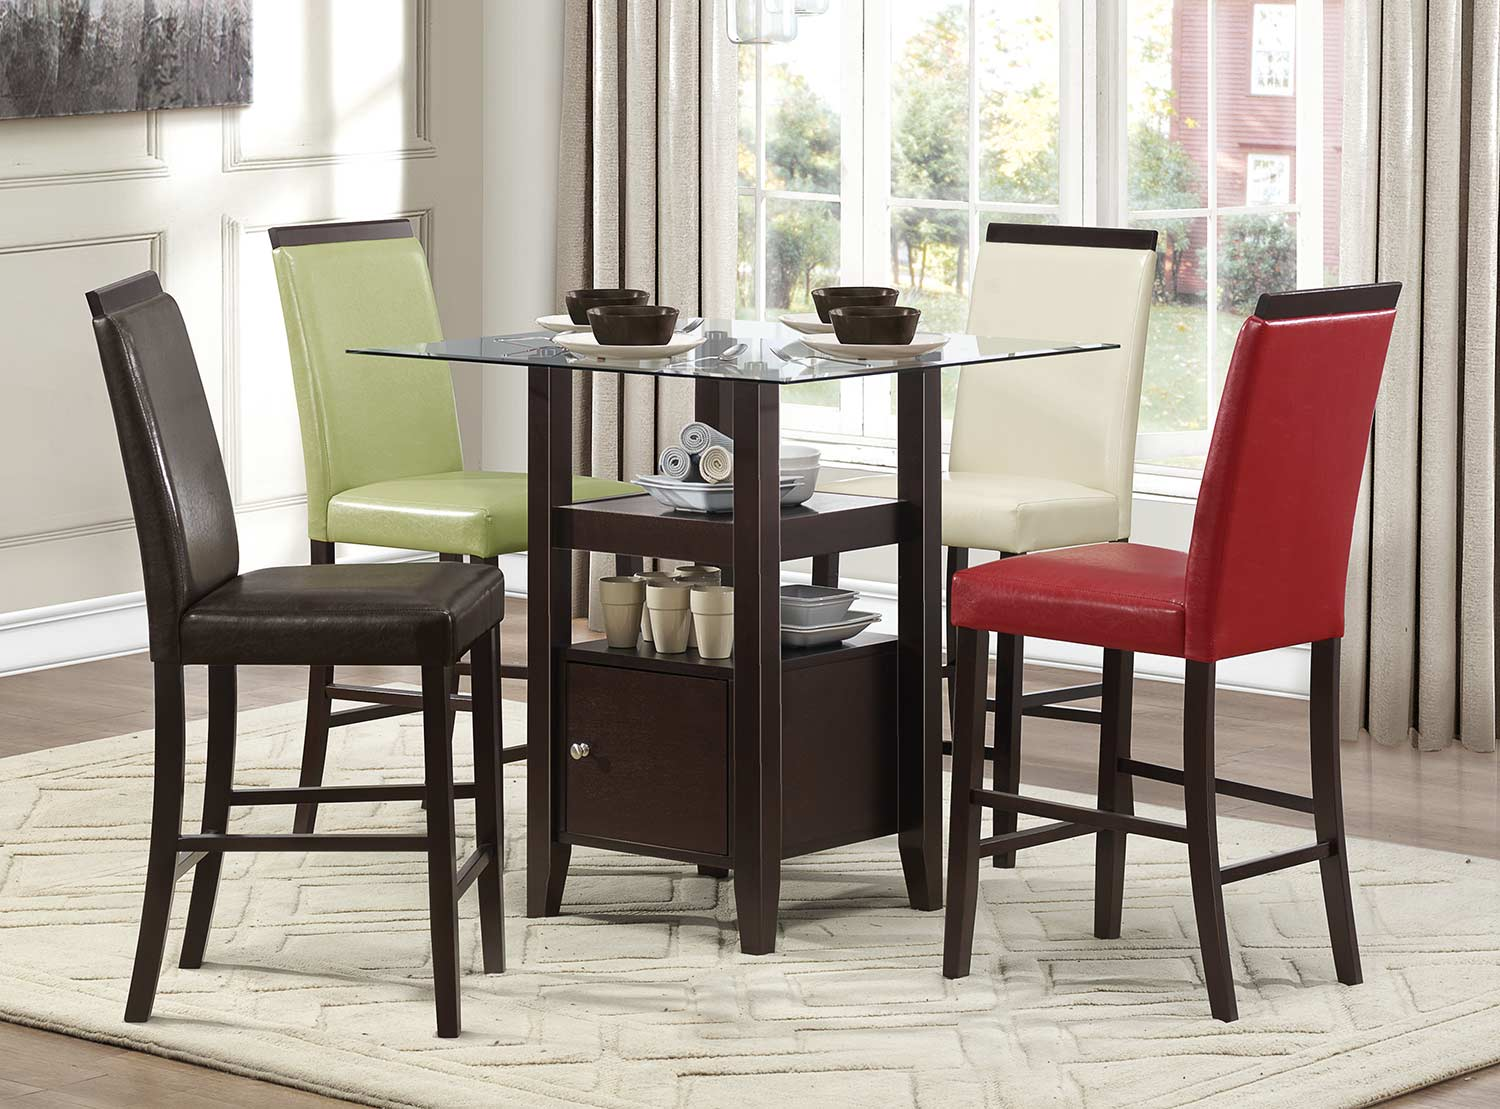 Homelegance Bari Counter Height Dining Set -